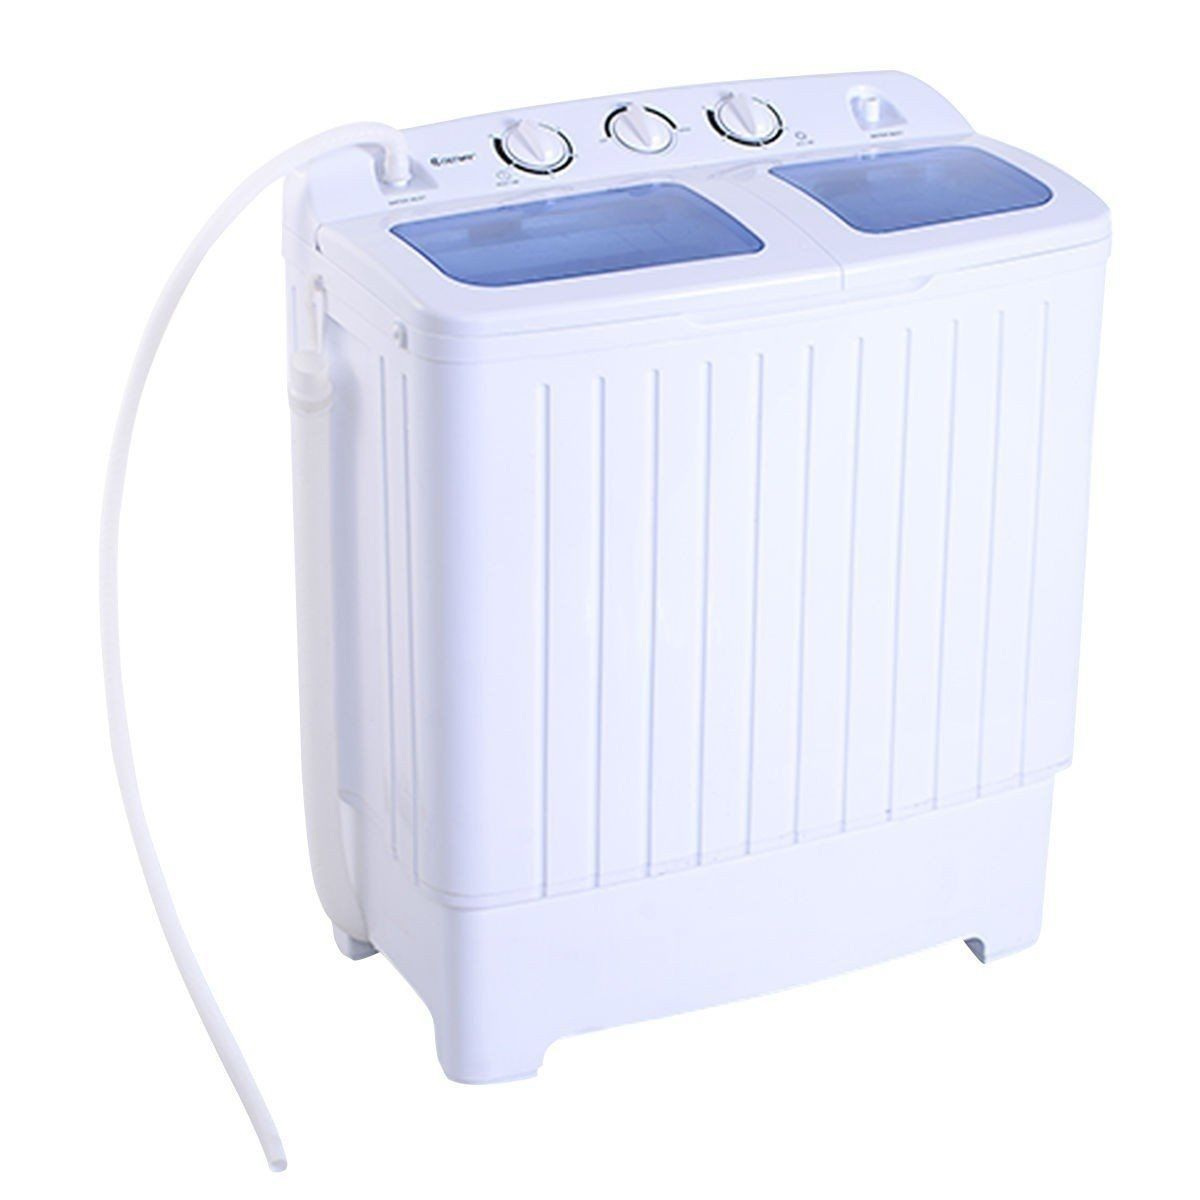 Miniature Clothes Dryer ~ Portable washing machine washer and clothes dryer top